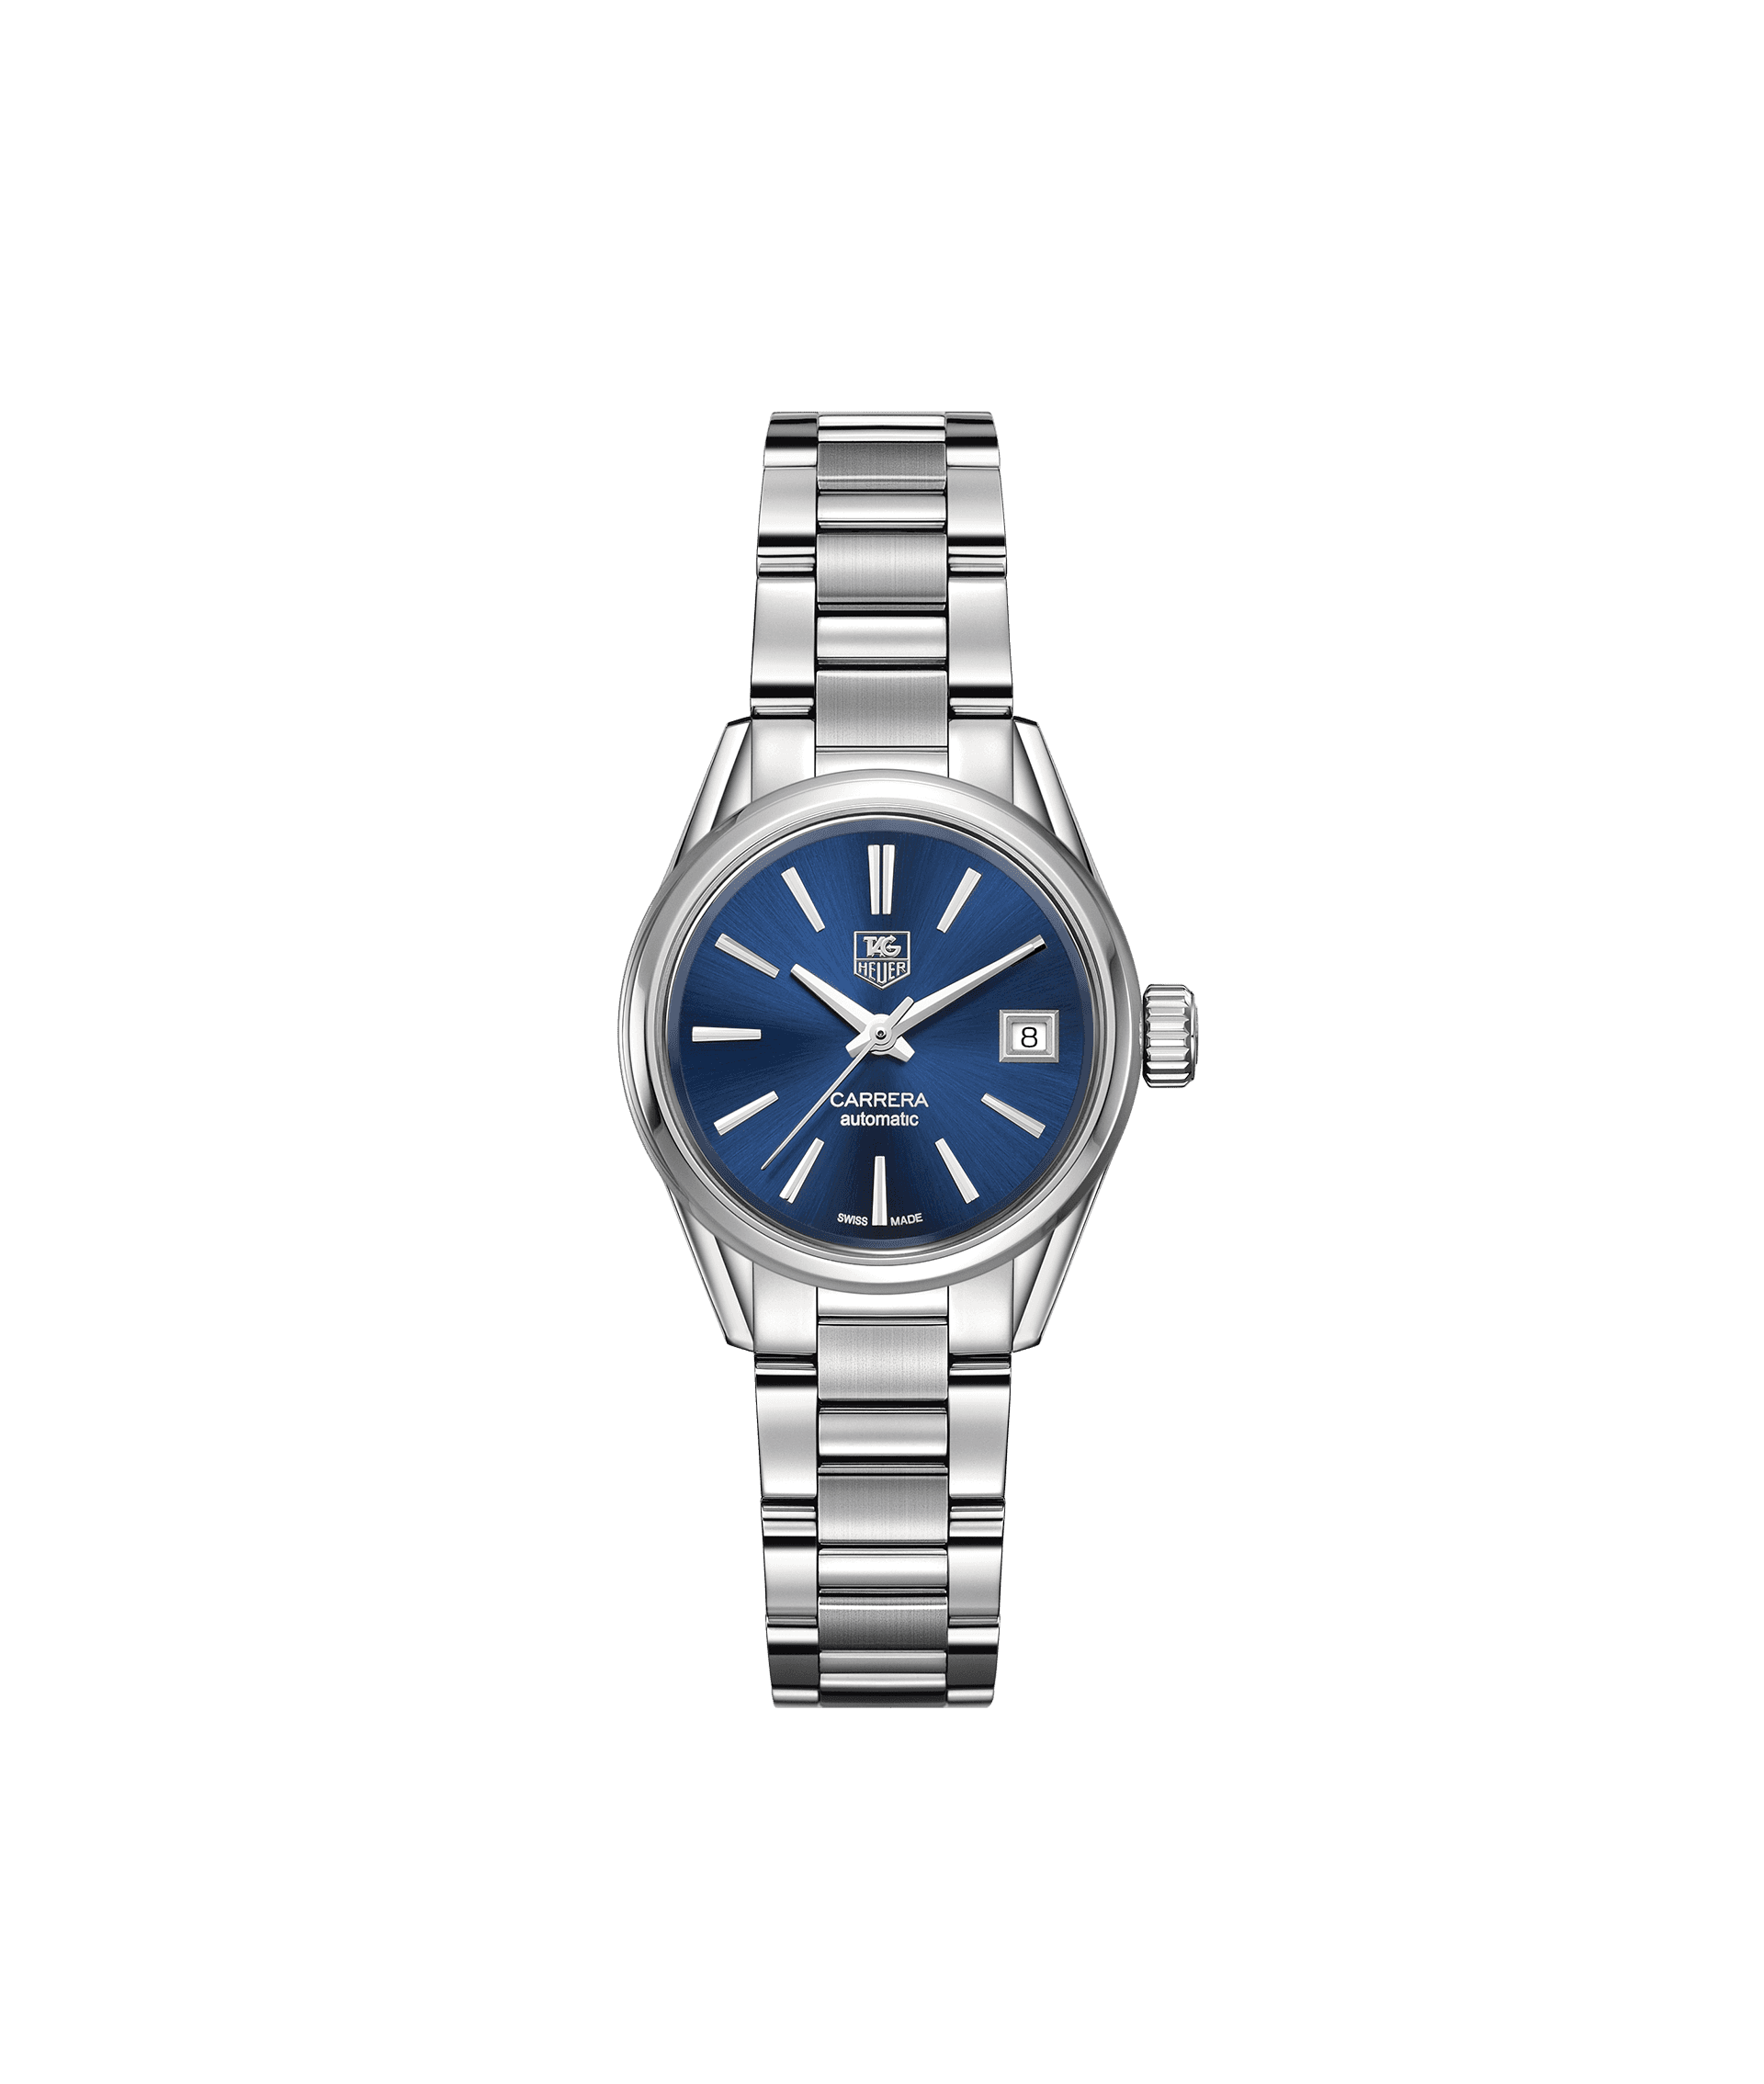 women's tag heuer watches - HD1920×2268